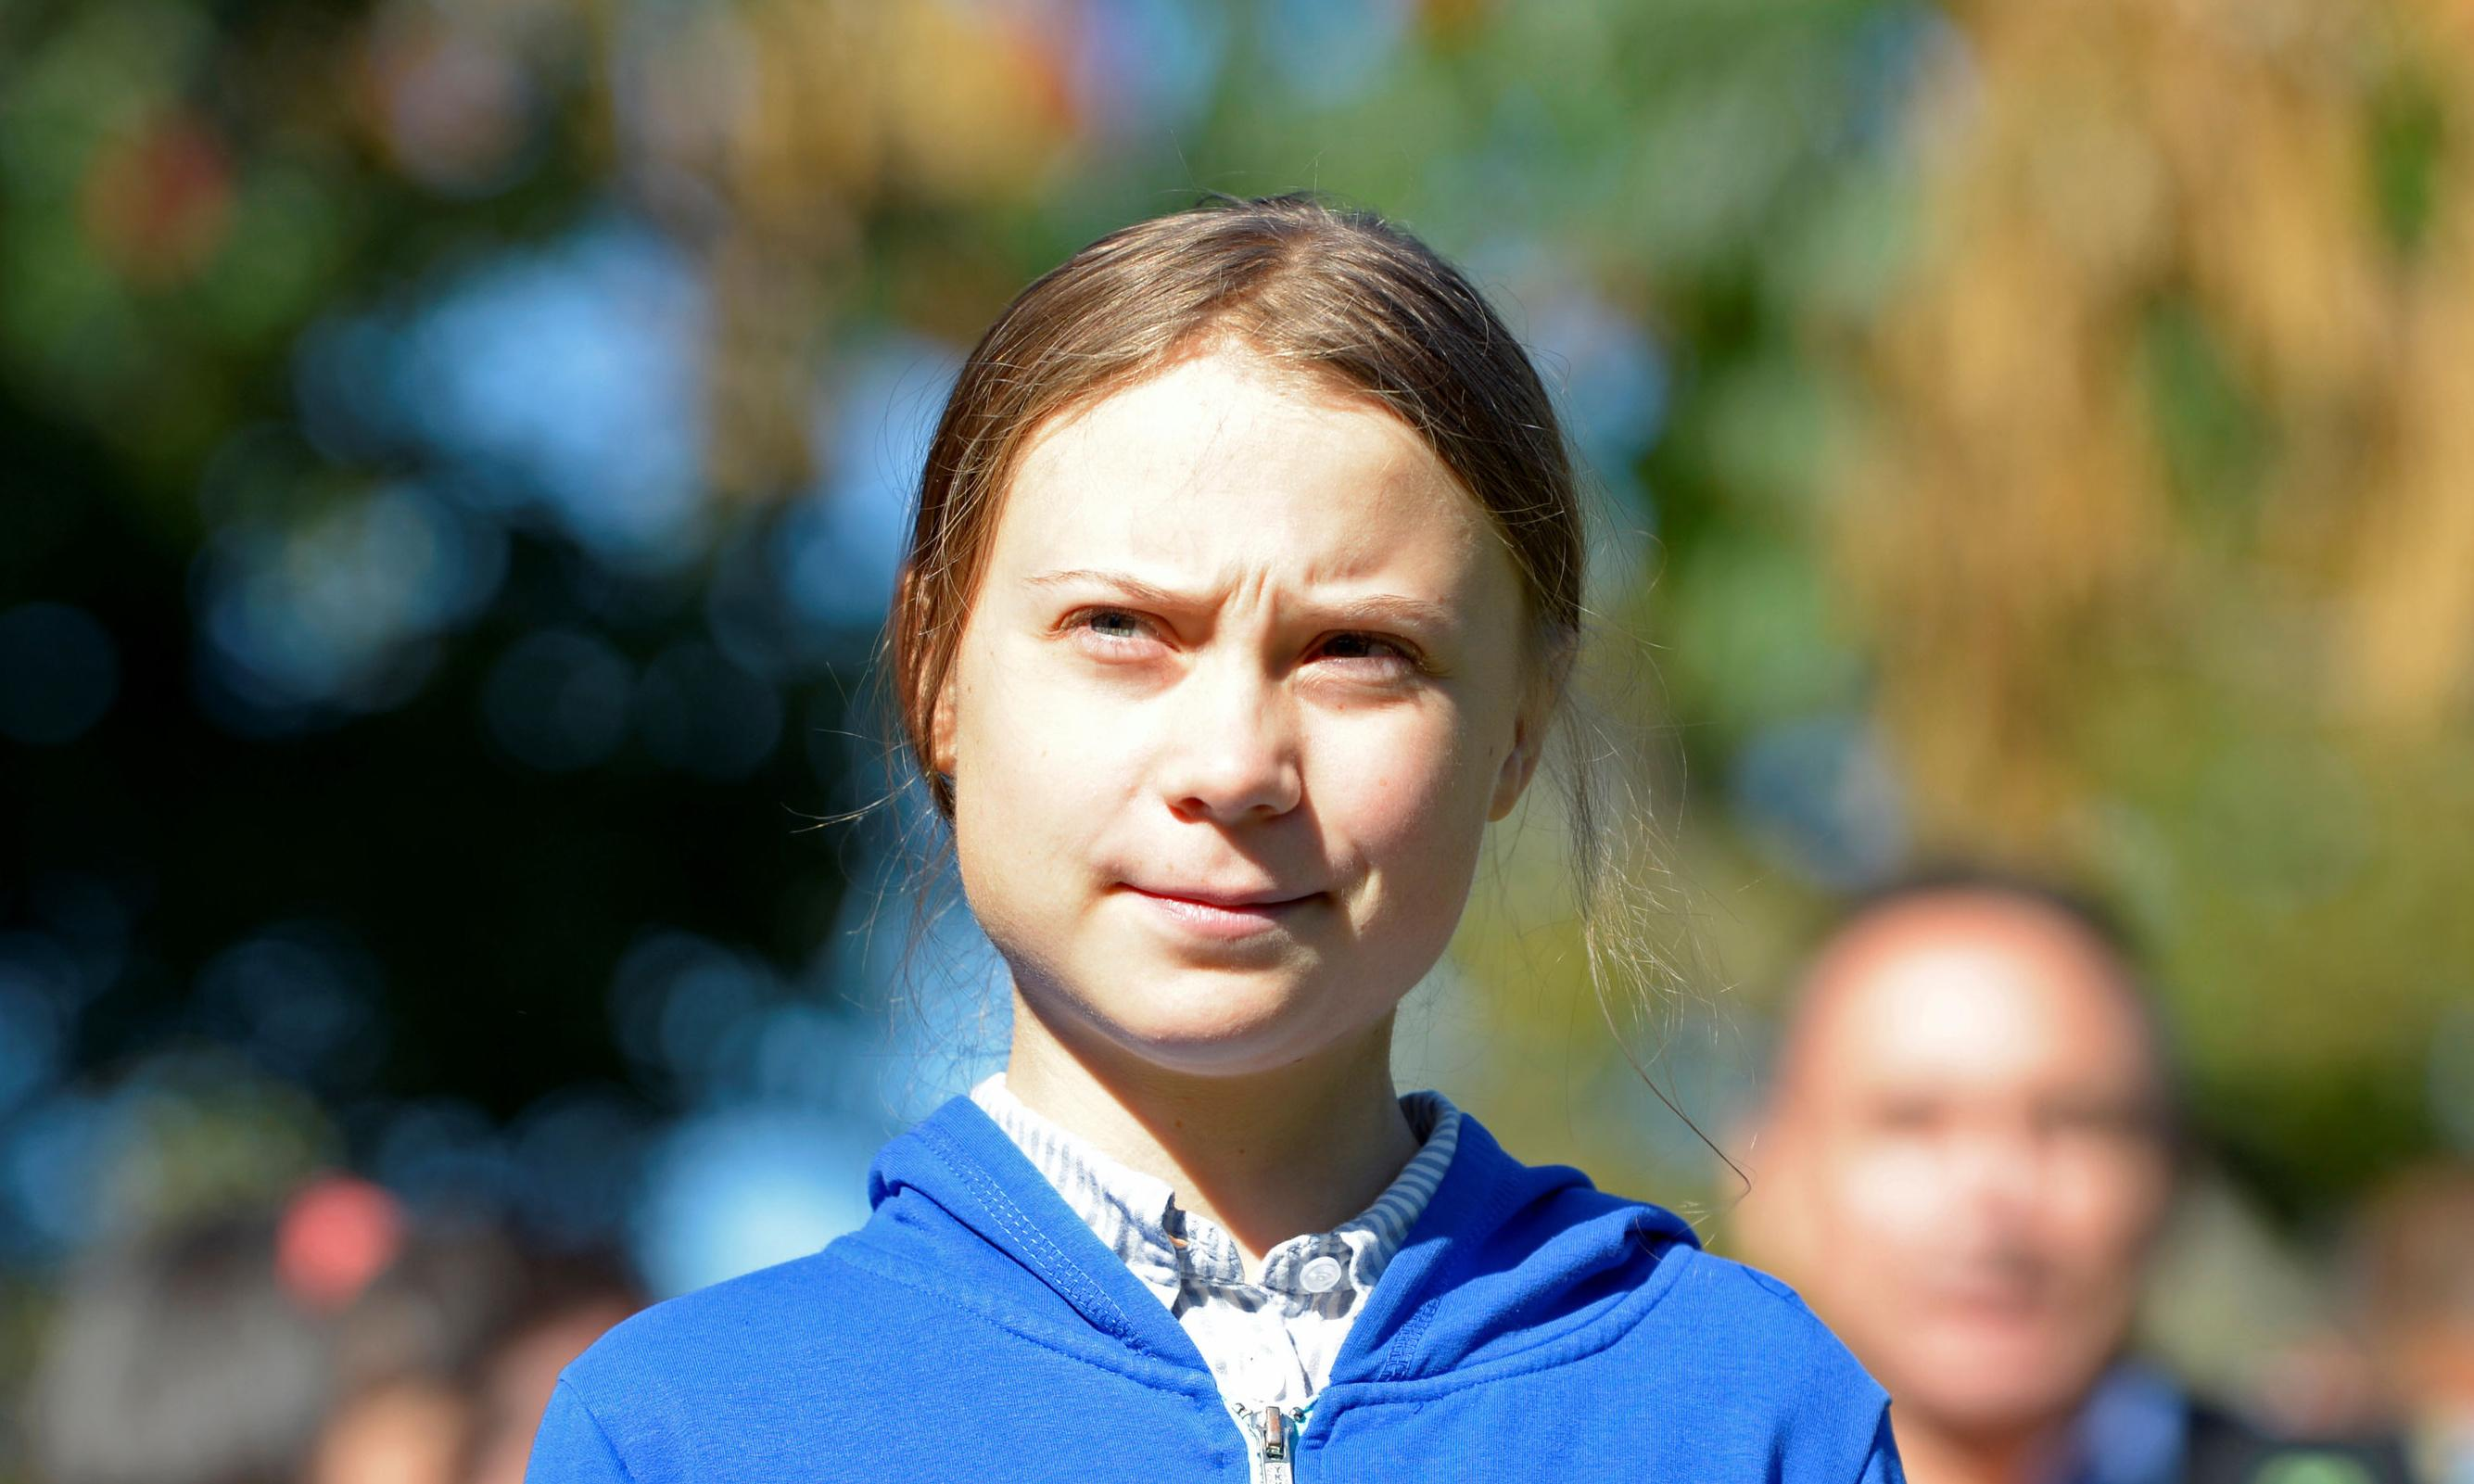 Greta Thunberg's defiance unsettles the patriarchy – wonderful